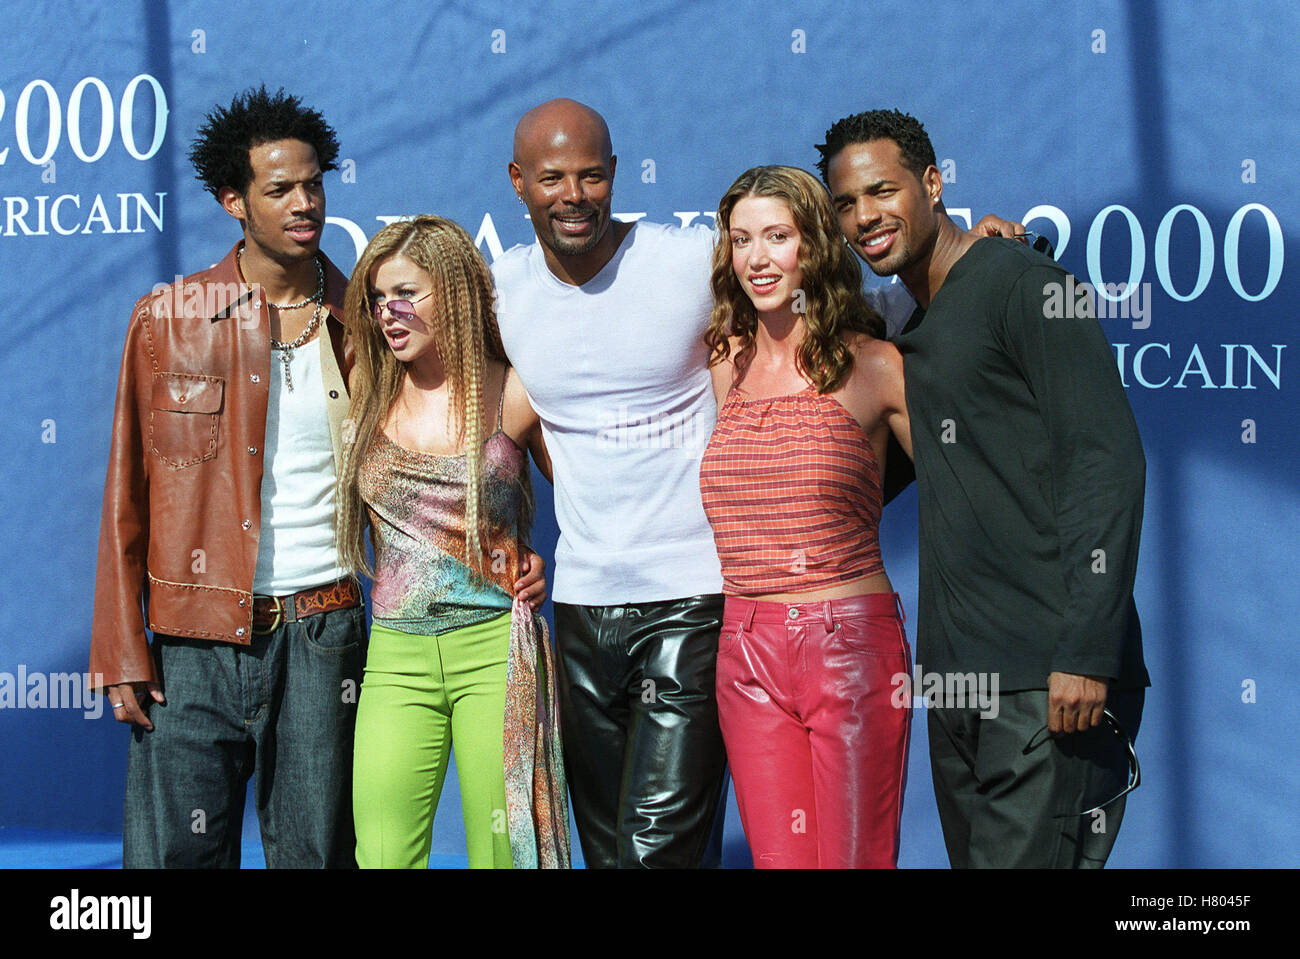 Scary Movie High Resolution Stock Photography And Images Alamy